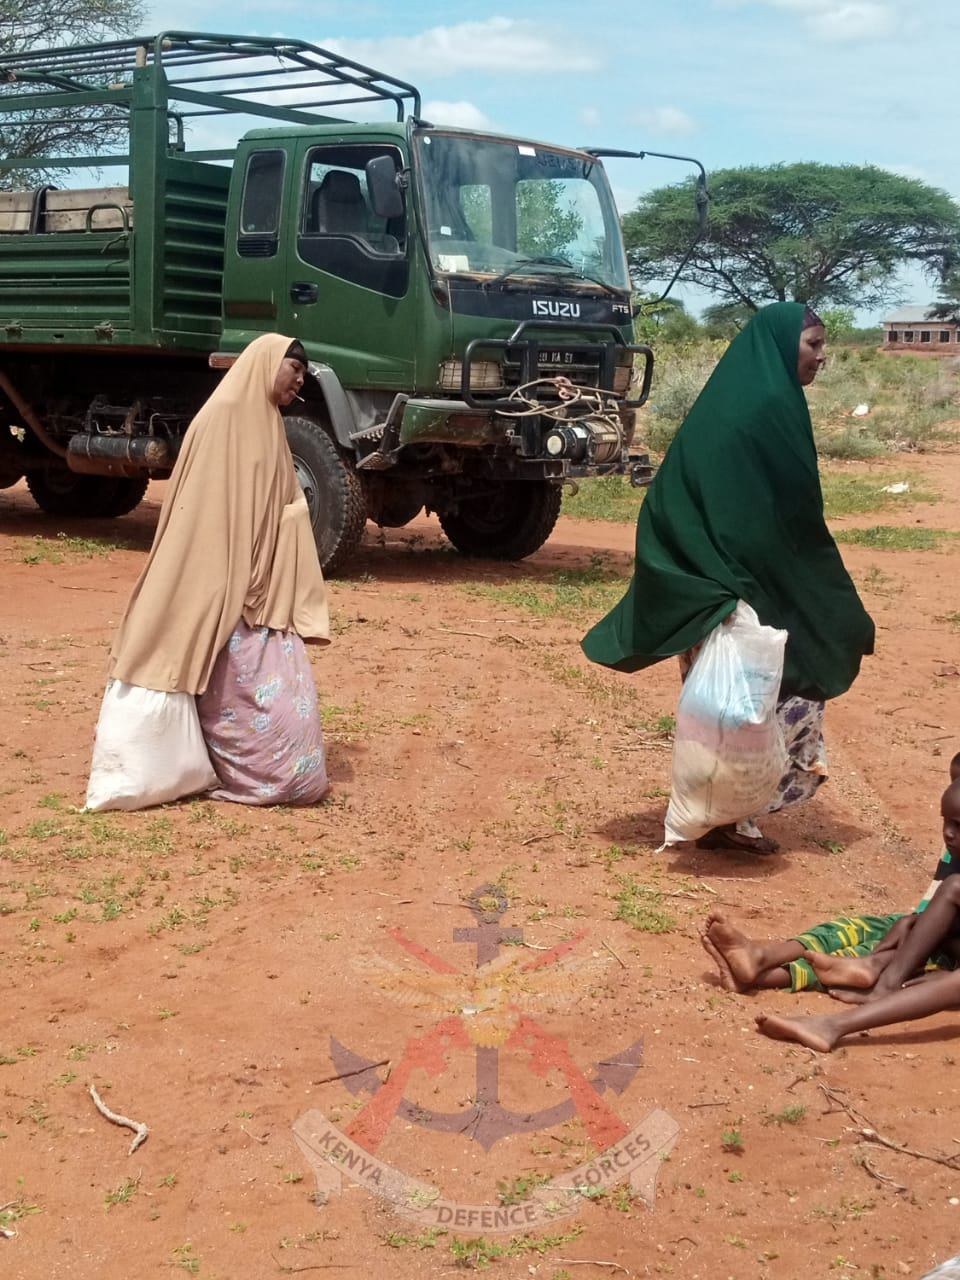 KDF TROOPS SHARE FOOD AND OFFER MEDICAL SUPPORT TO LOCALS AT GHERILLE